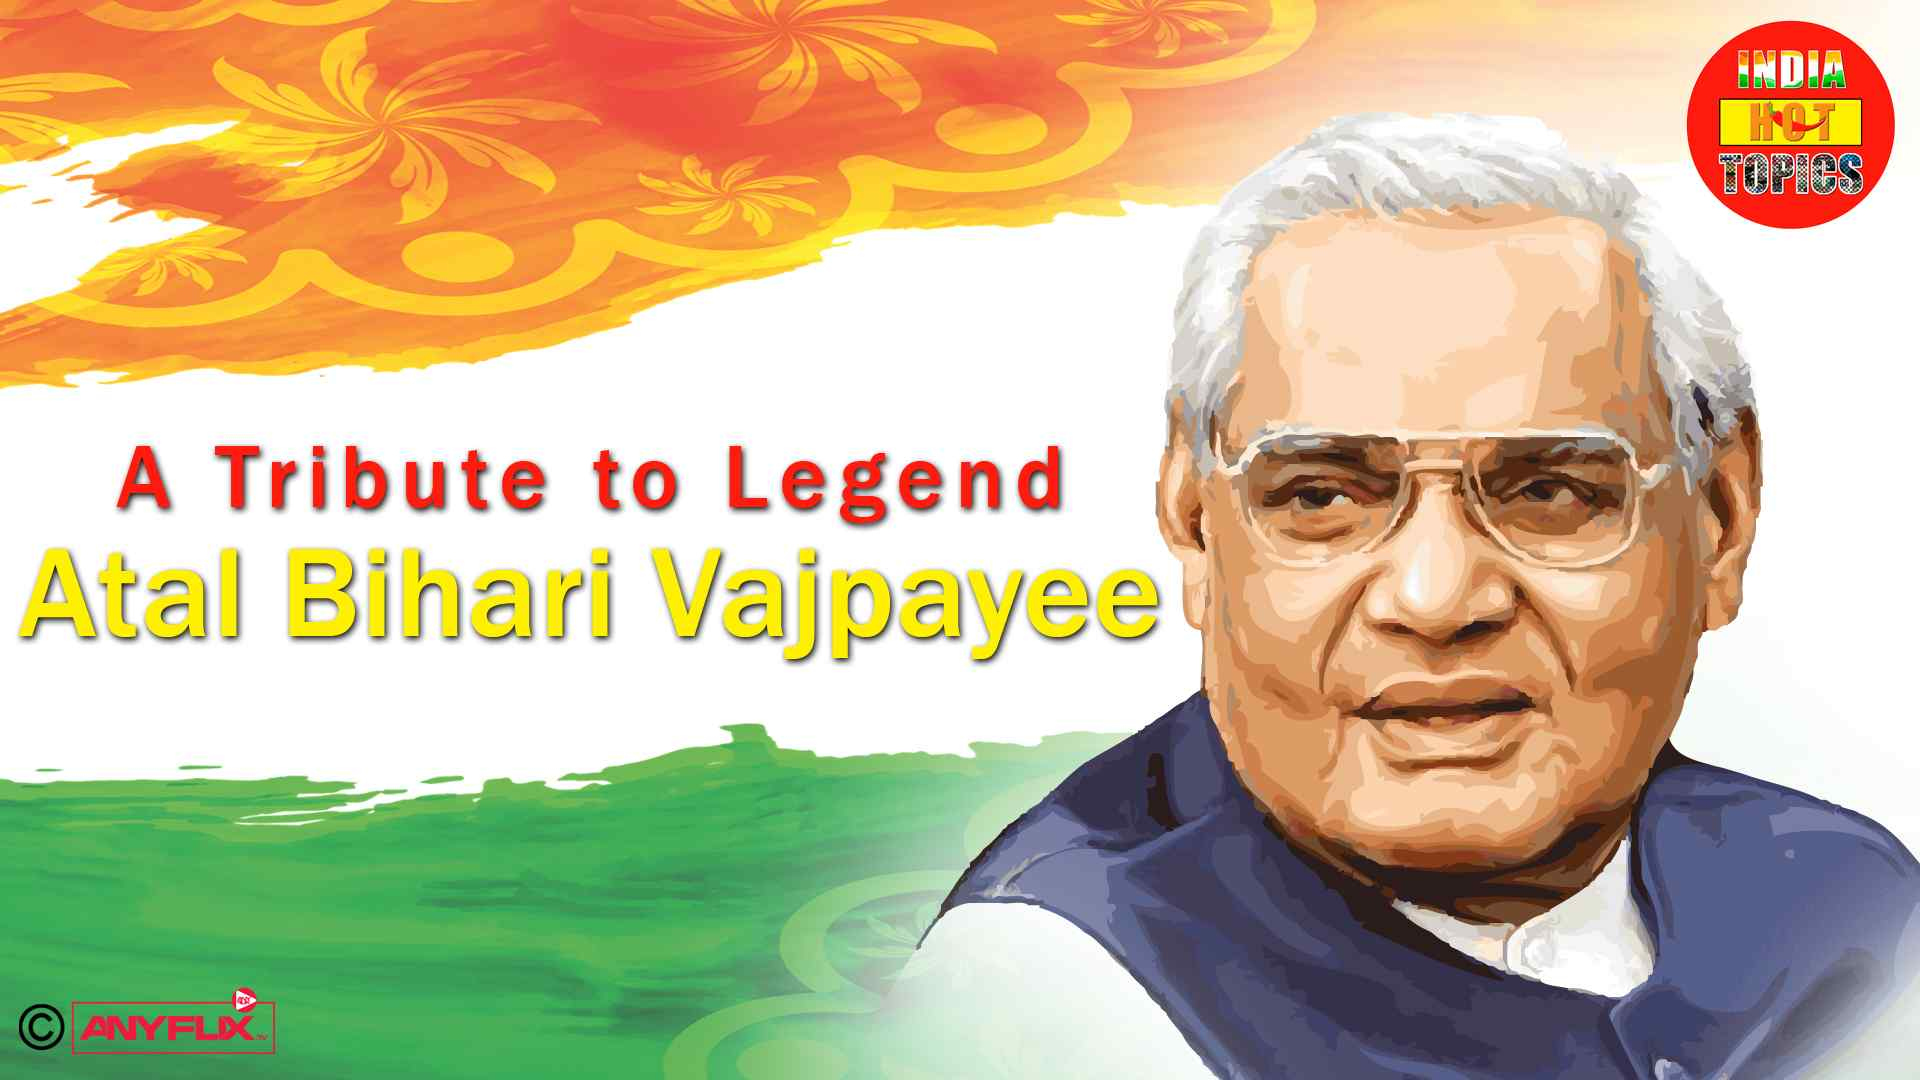 A Tribute to Legend Atal Bihari Vajpayee|India Hot Topics